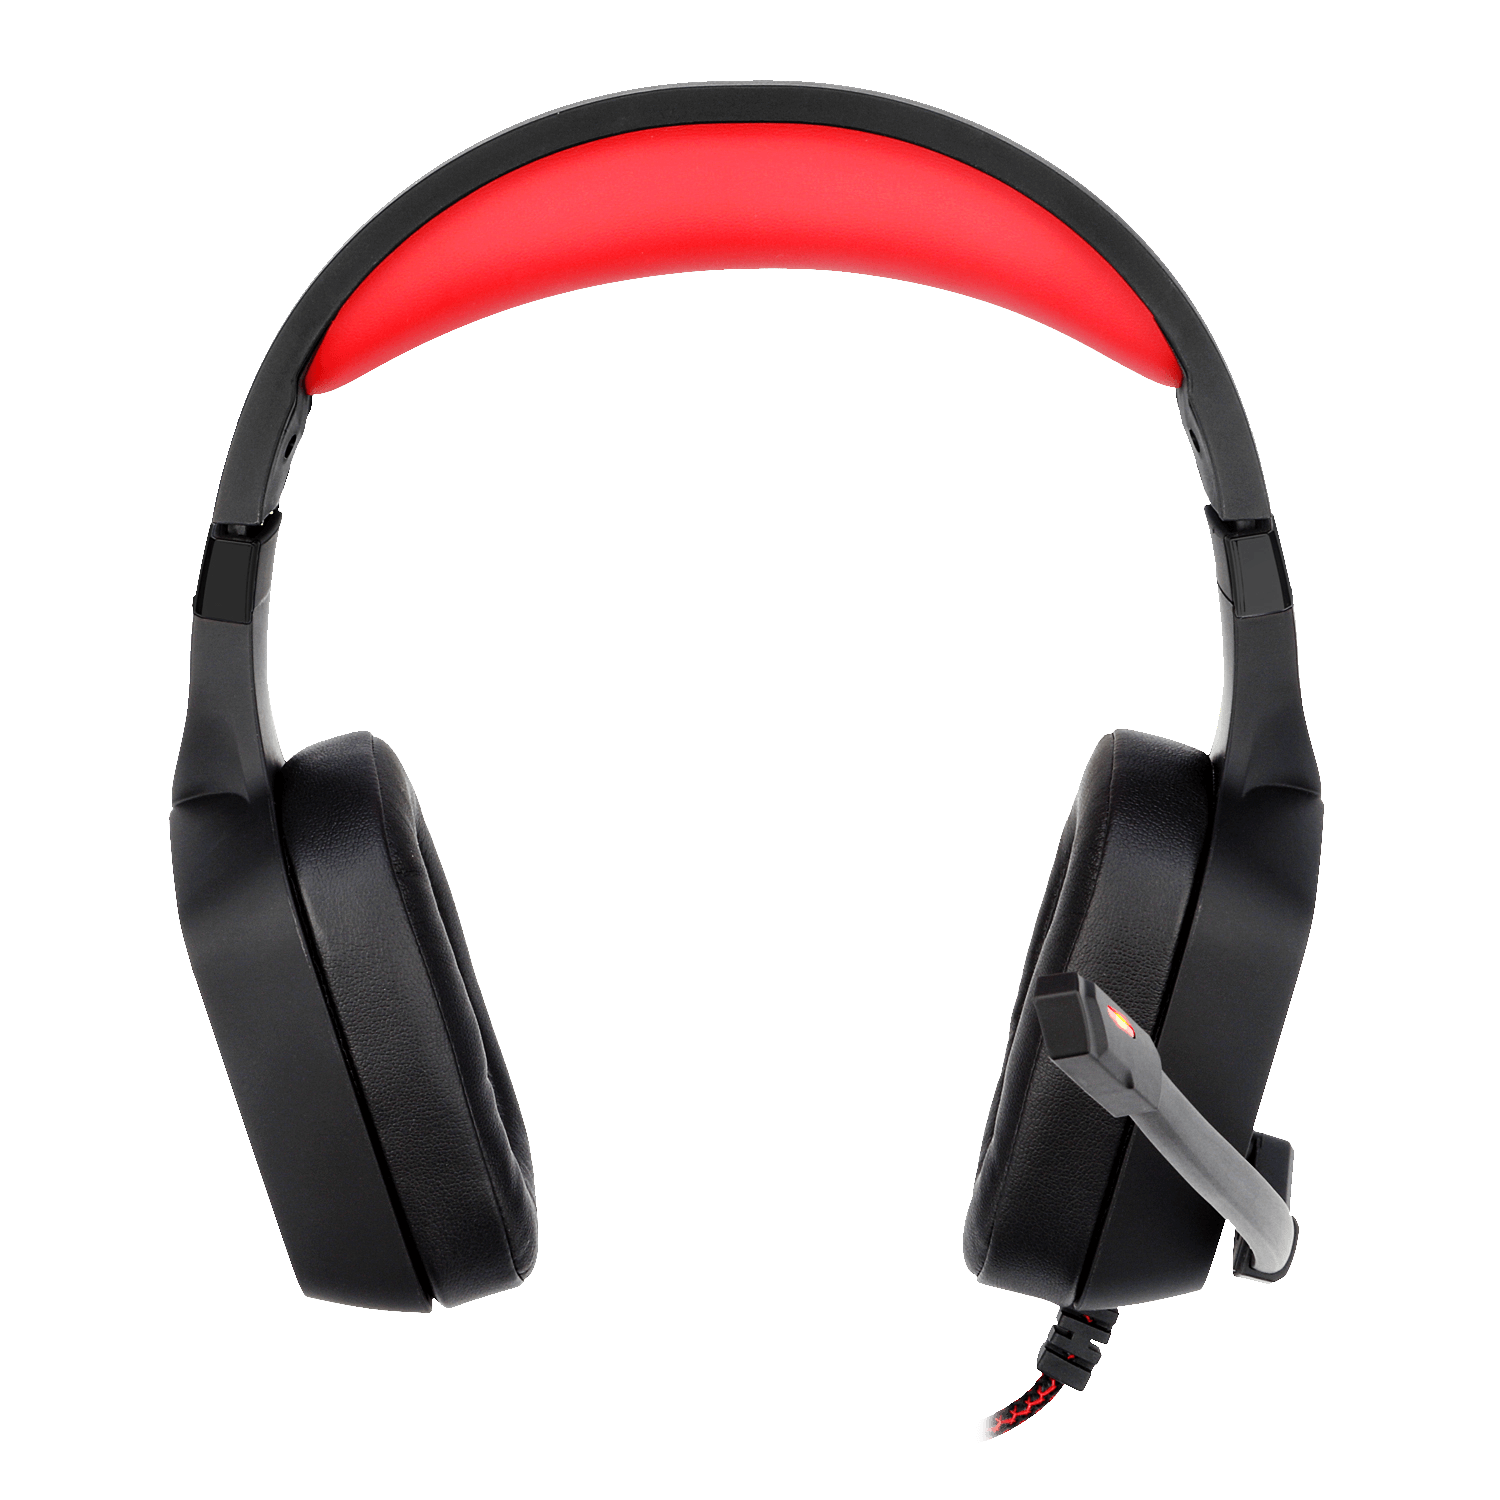 Redragon-H310-Headphone-3